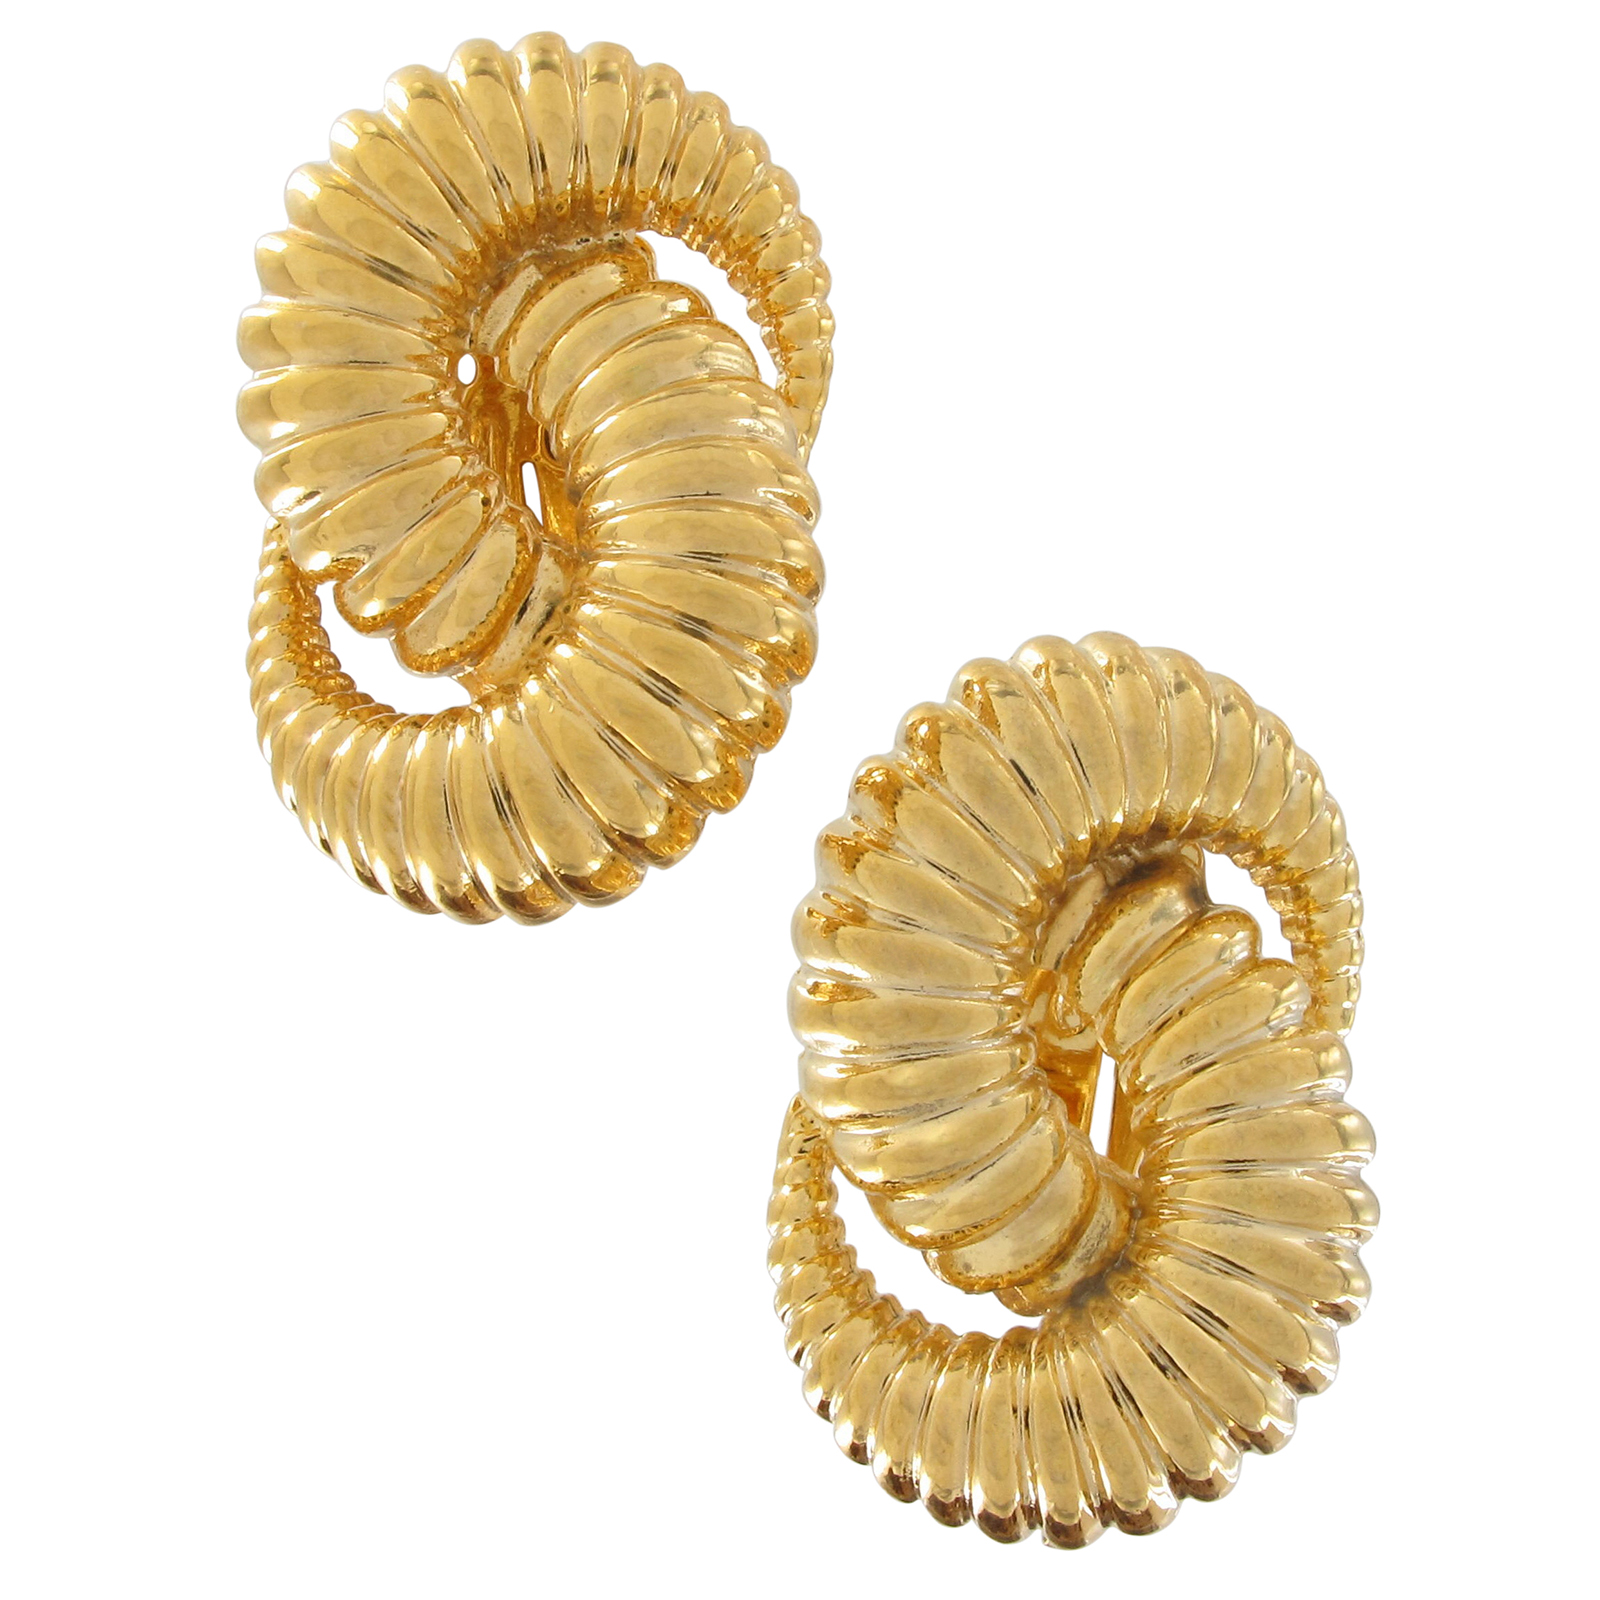 Vintage Knot Twisted Swirl Textured Clip On Earrings 1 1/4""